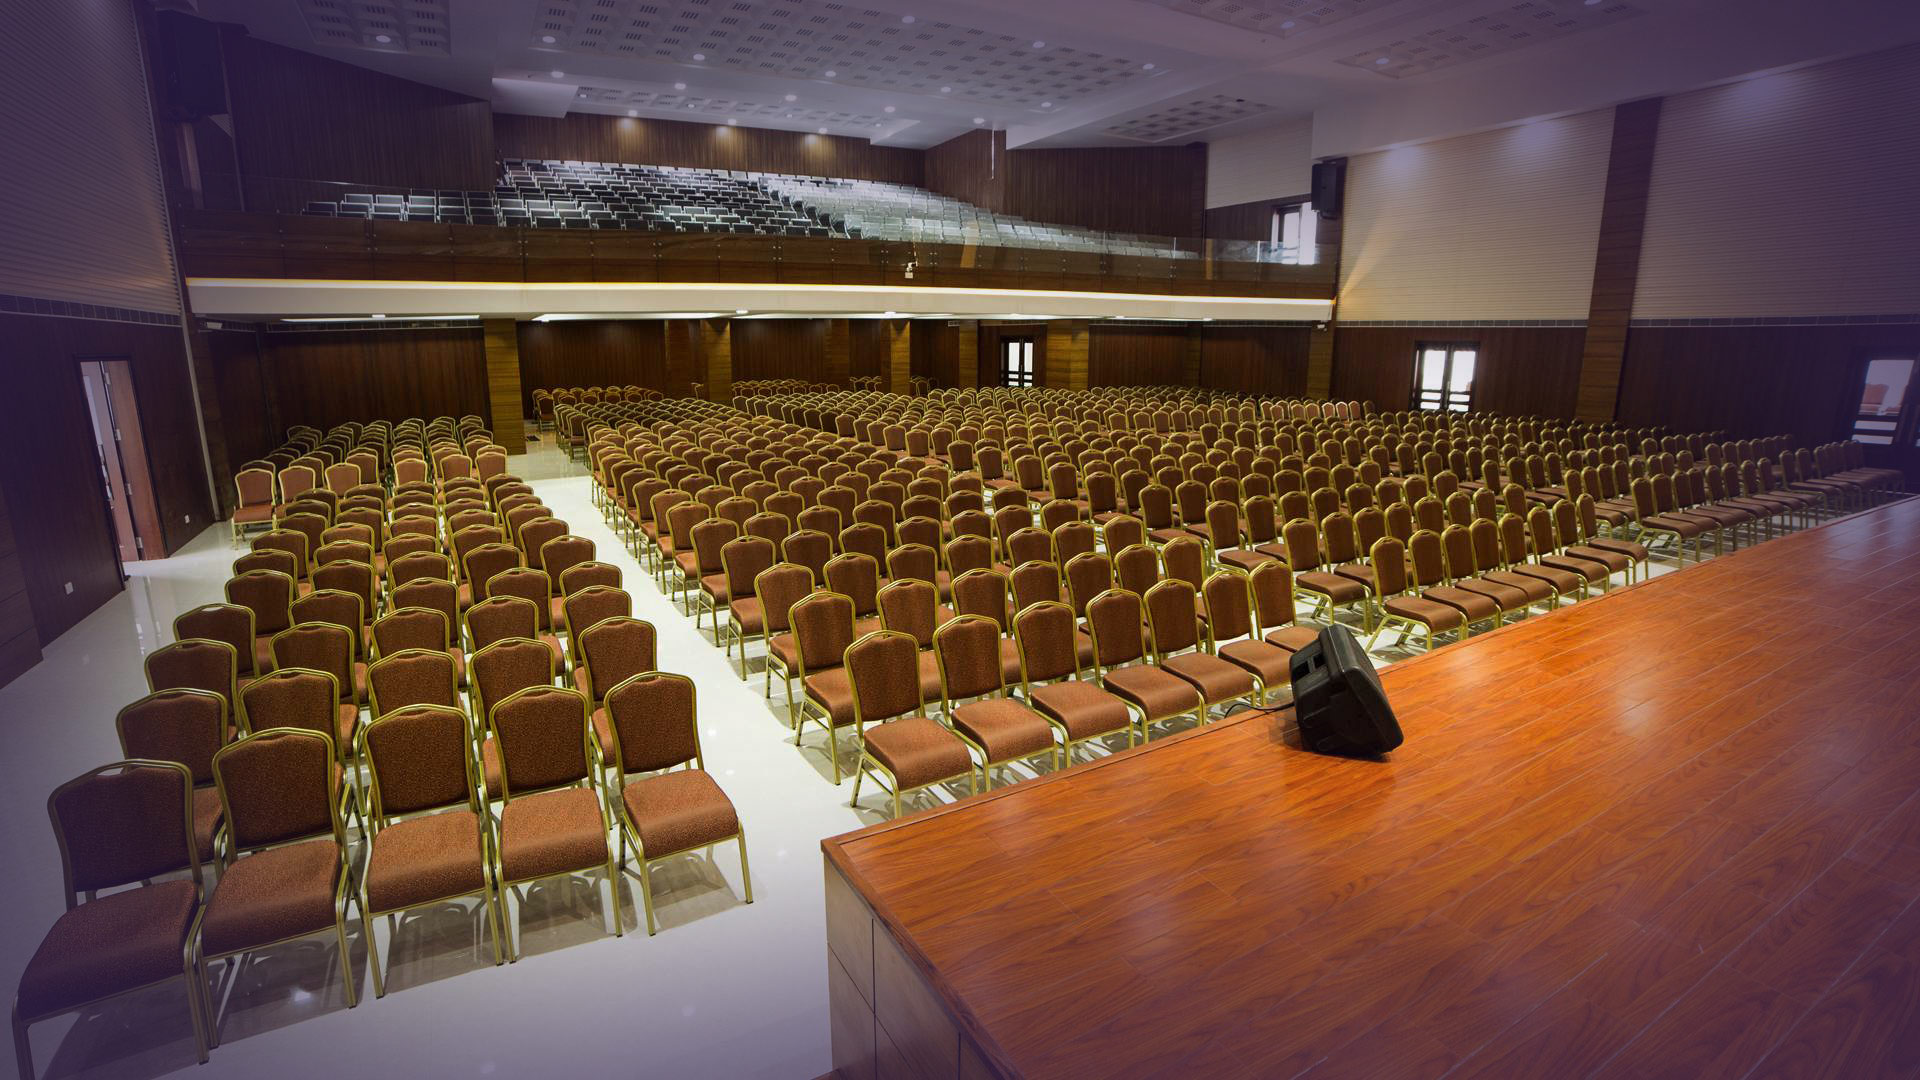 Njalakam Jama Ath Convention Centre